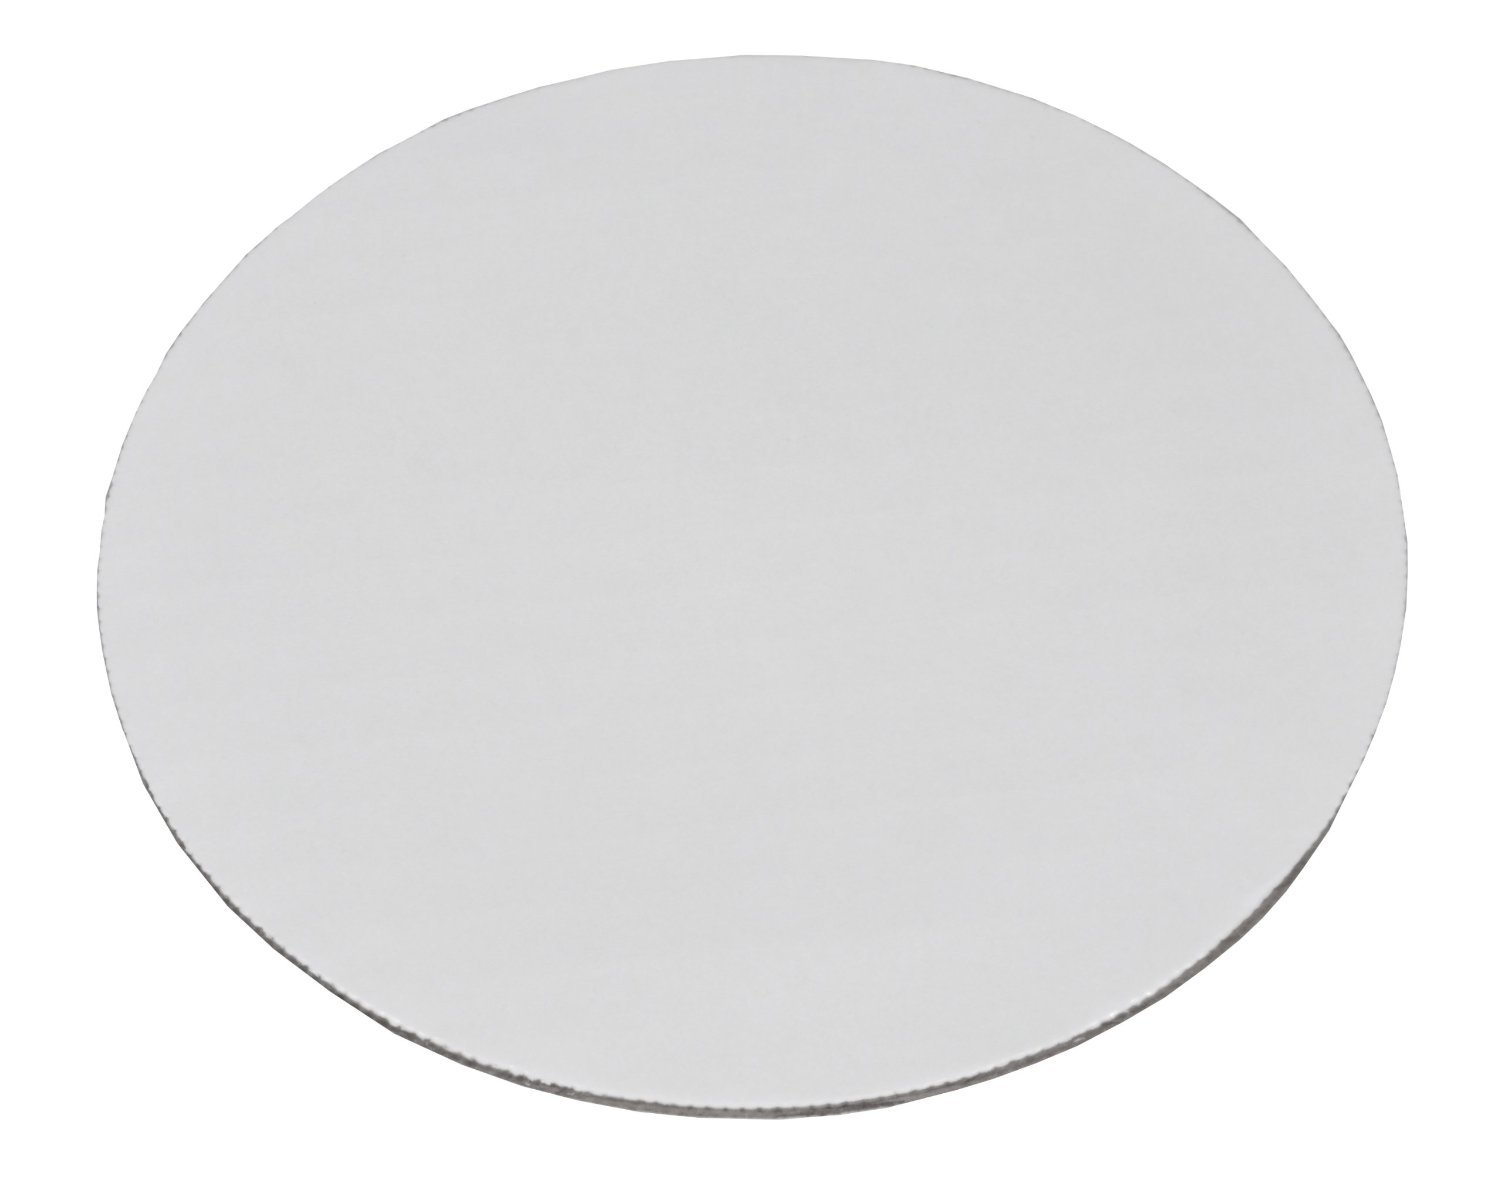 Southern Champion Tray 11217 10'' Corrugated Single Wall Cake and Pizza Circle, Greaseproof, White (Case of 100)